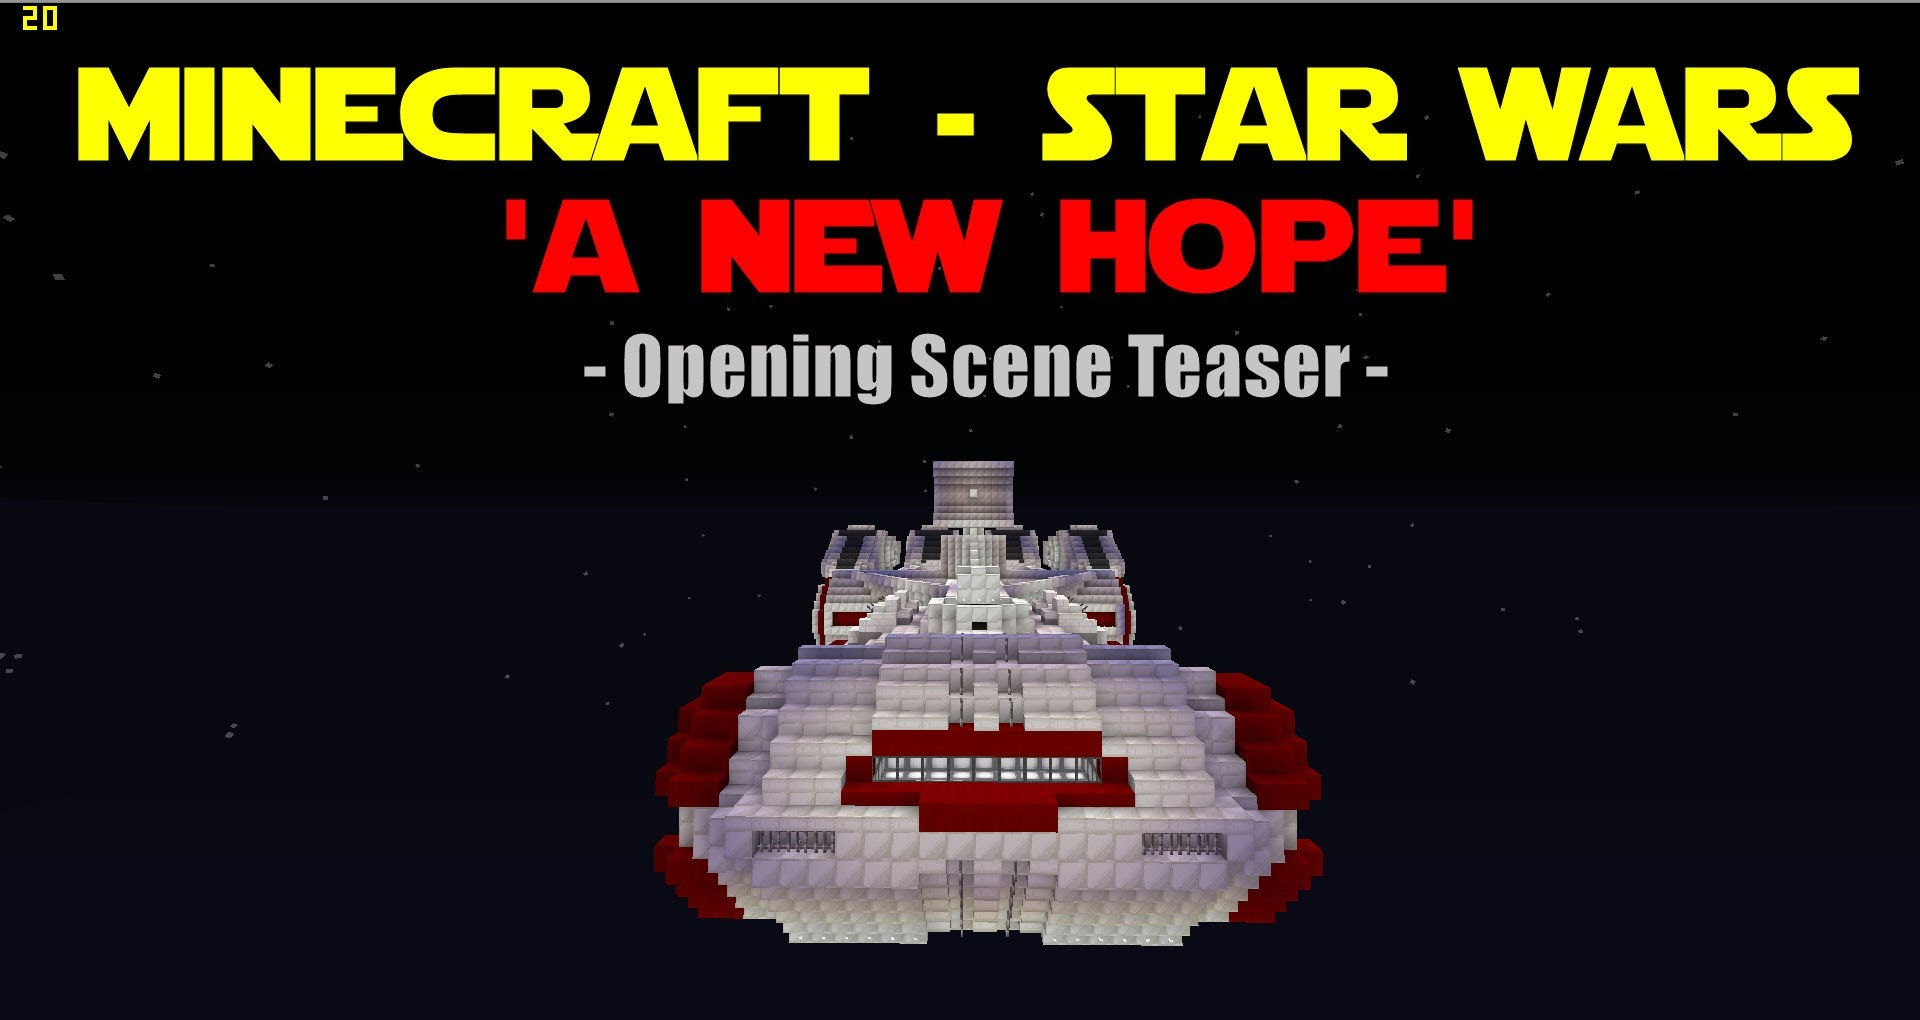 The Beginning of 'Star Wars Episode IV: A New Hope' & Other Iconic Scenes Recreated in 'Minecraft'